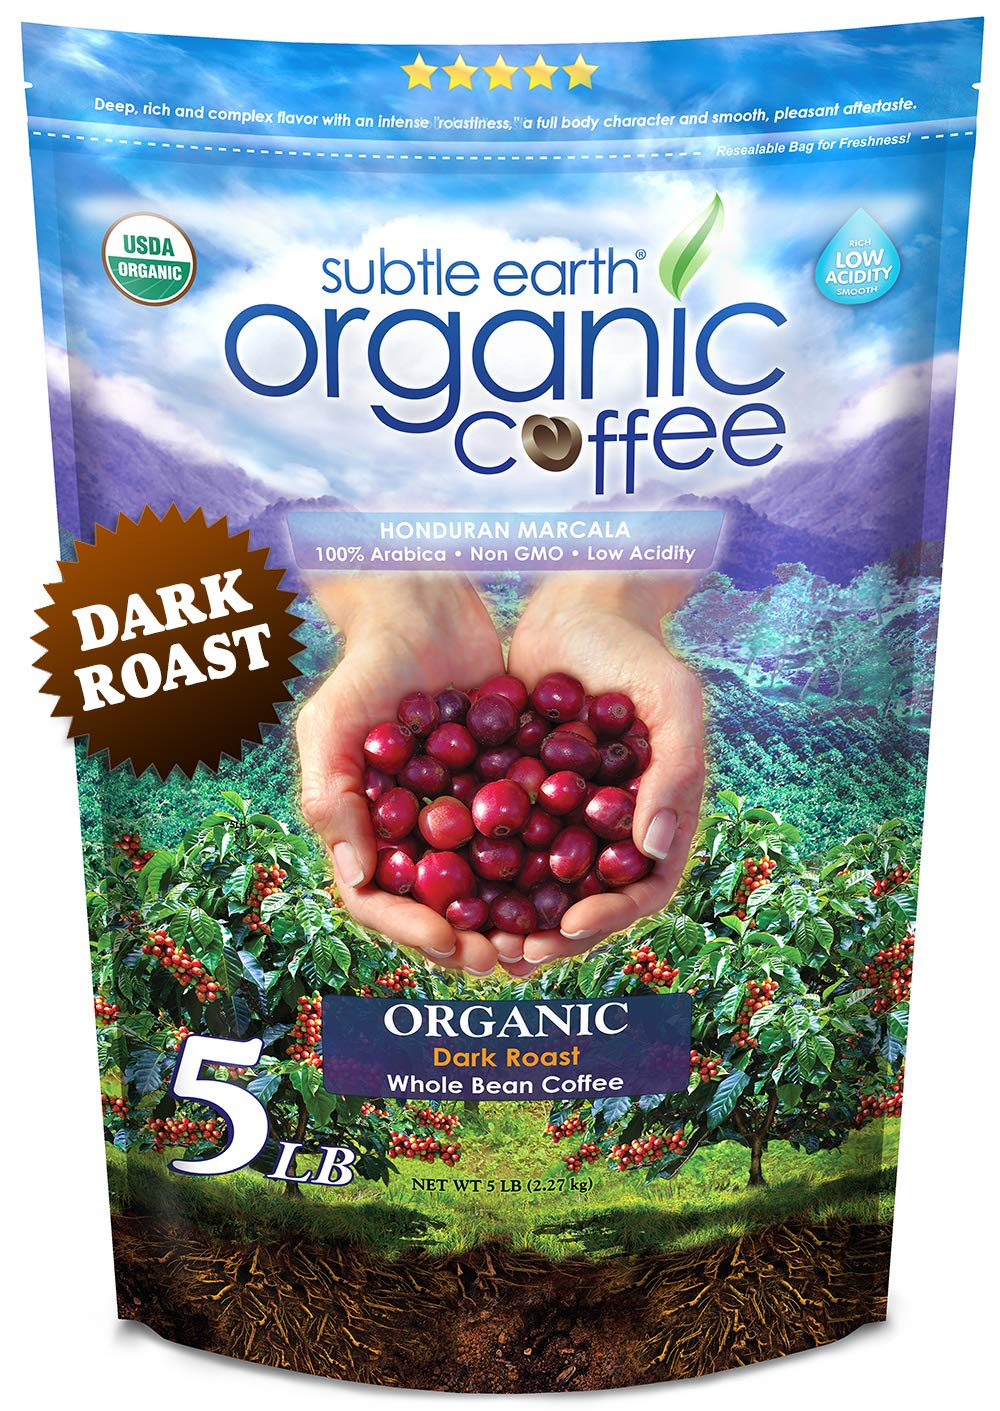 5LB Subtle Earth Organic Coffee - Dark Roast - Whole Bean Coffee